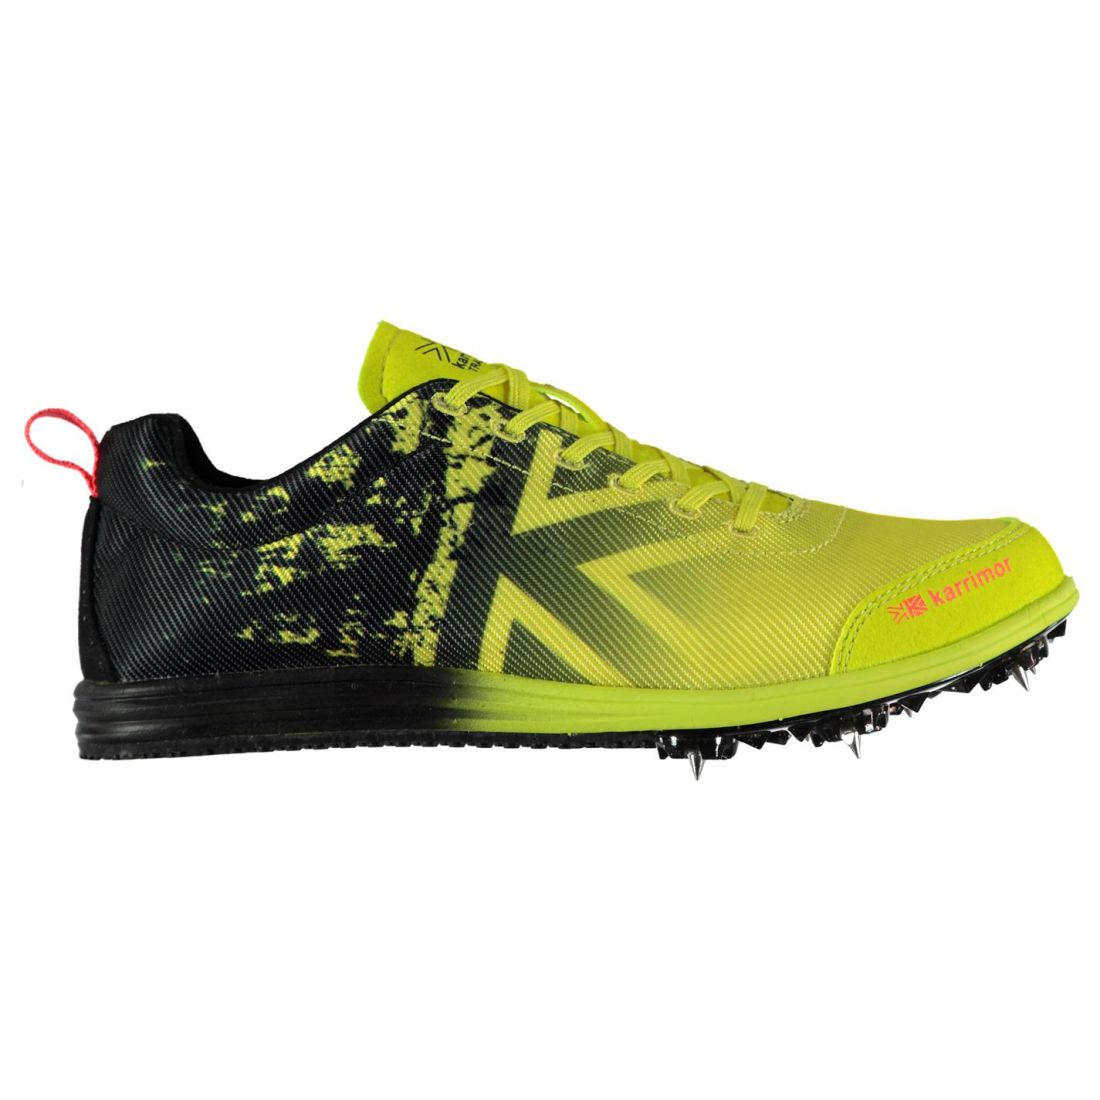 e54ce815a907 Karrimor Kids Junior Running Spikes 4 Track Shoes Lace Up Padded Ankle  Collar